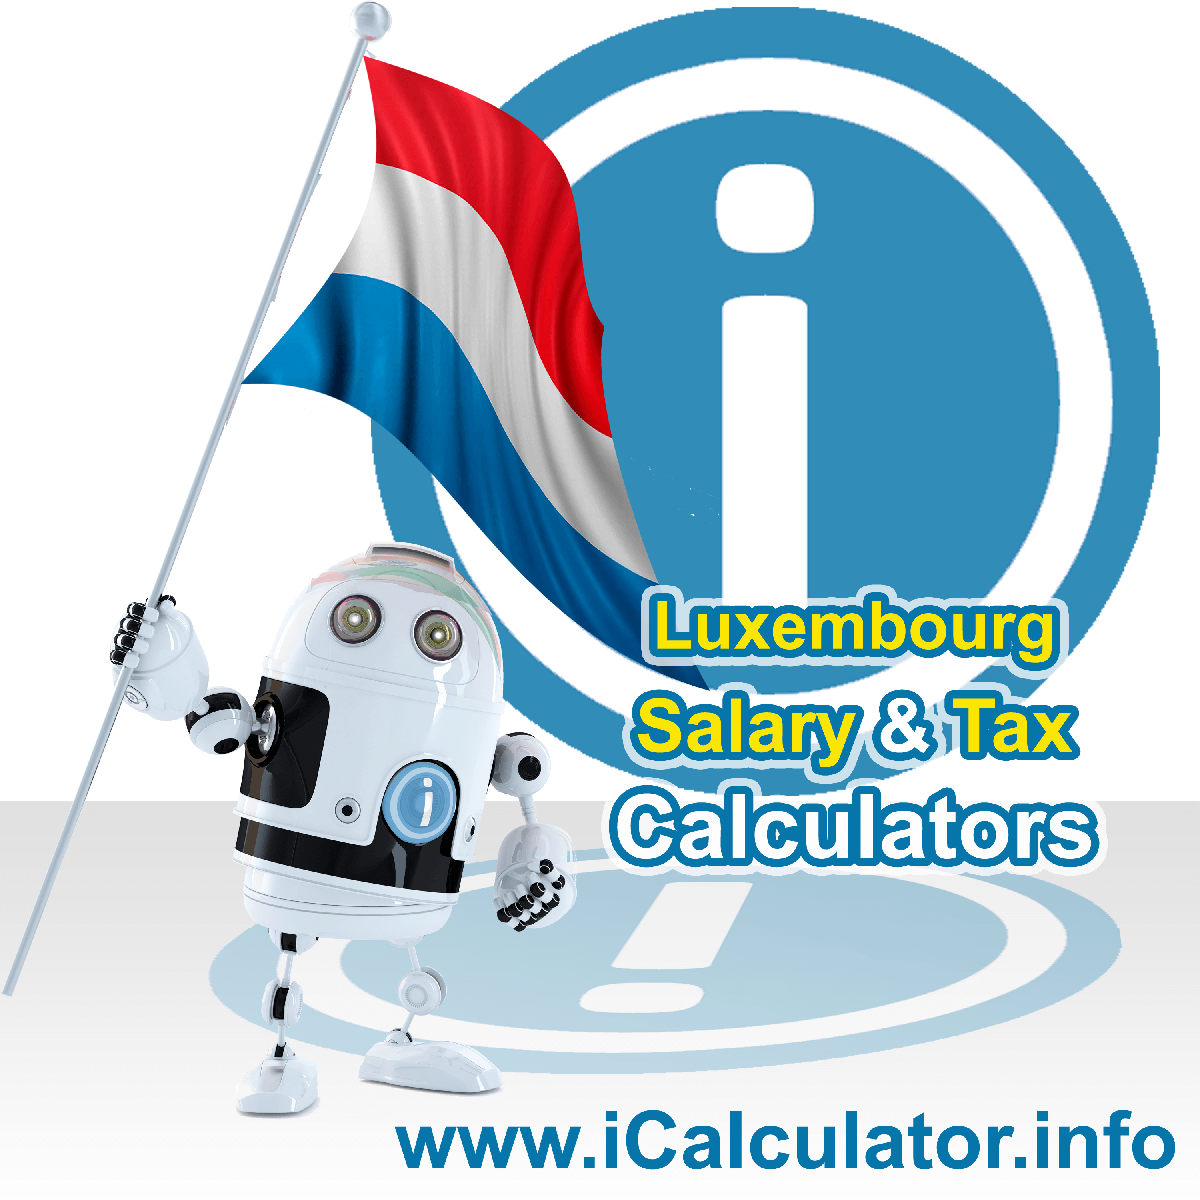 Luxembourg Tax Calculator. This image shows the Luxembourg flag and information relating to the tax formula for the Luxembourg Salary Calculator